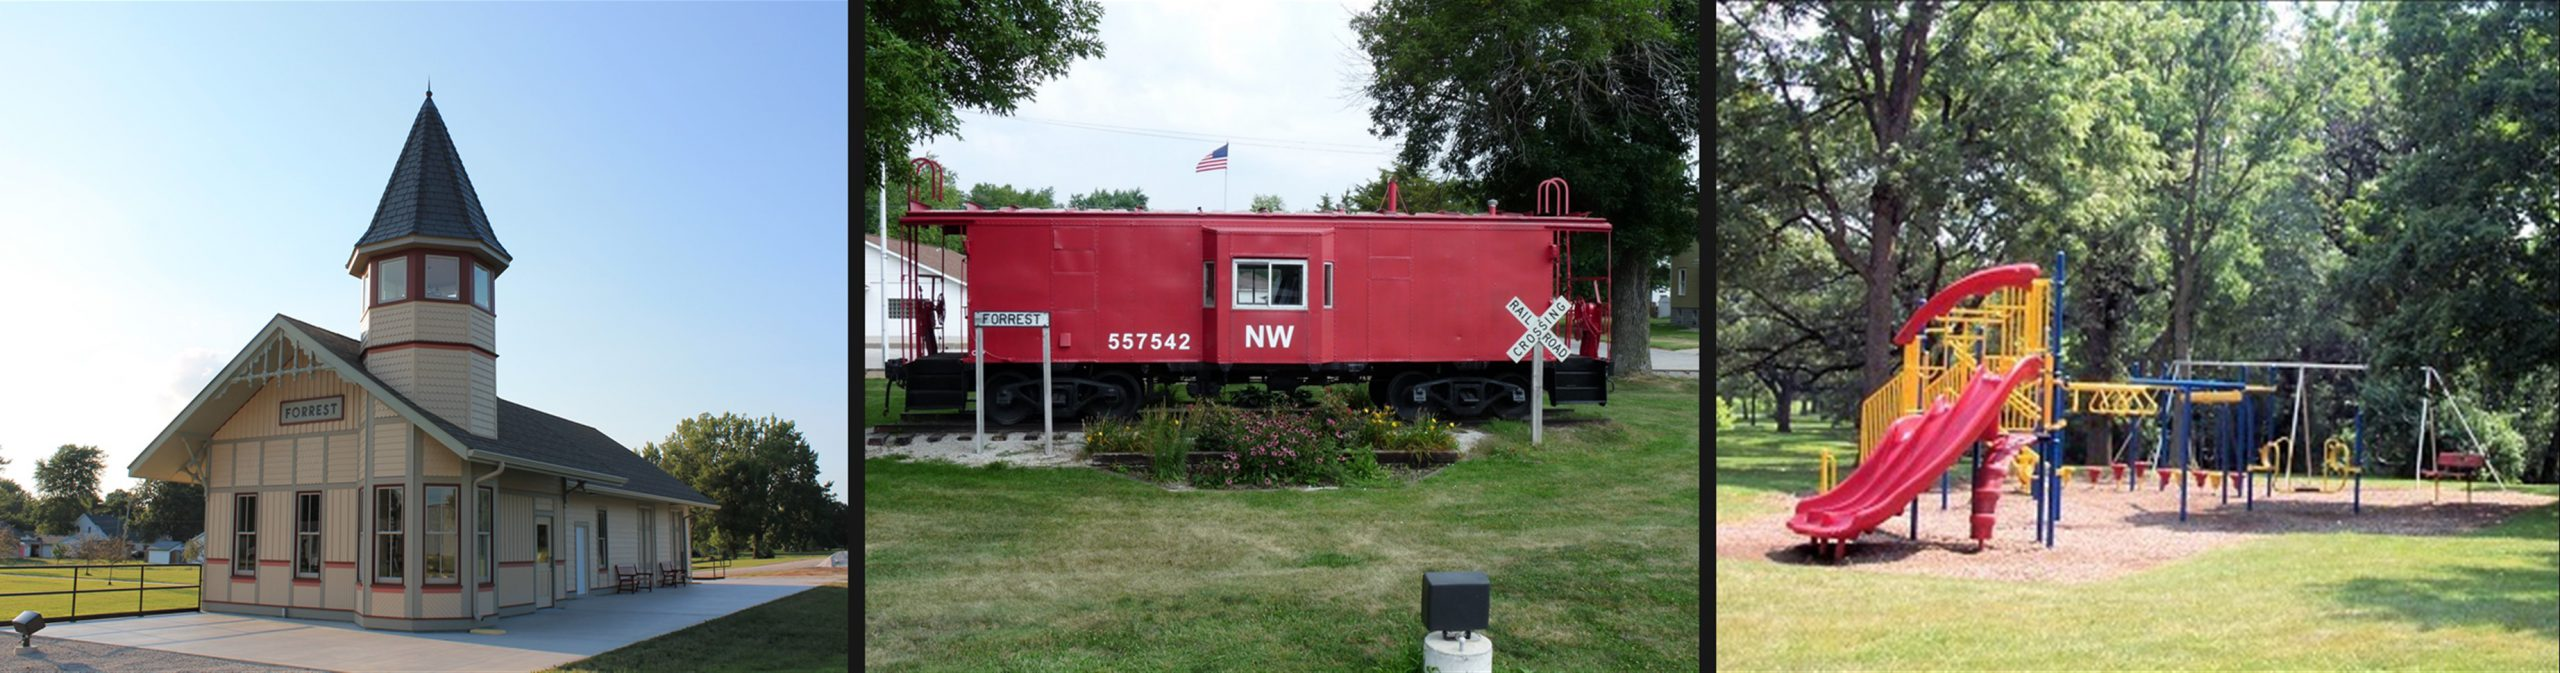 Forrest Illinois Attractions: Historic Train Depot, Train Caboose, and Park Playground